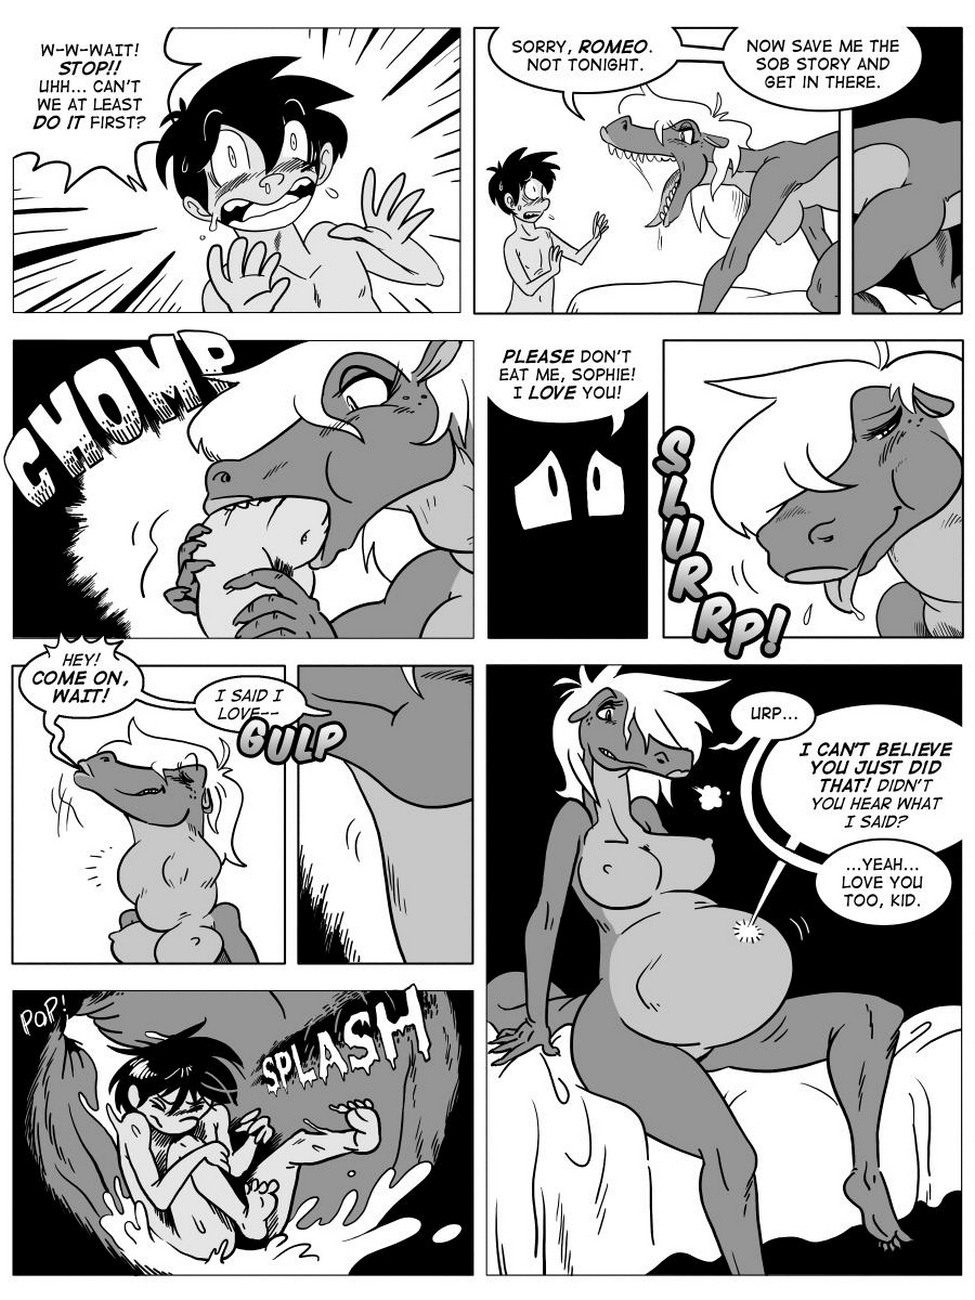 A-Date-With-Sophie 3 free sex comic